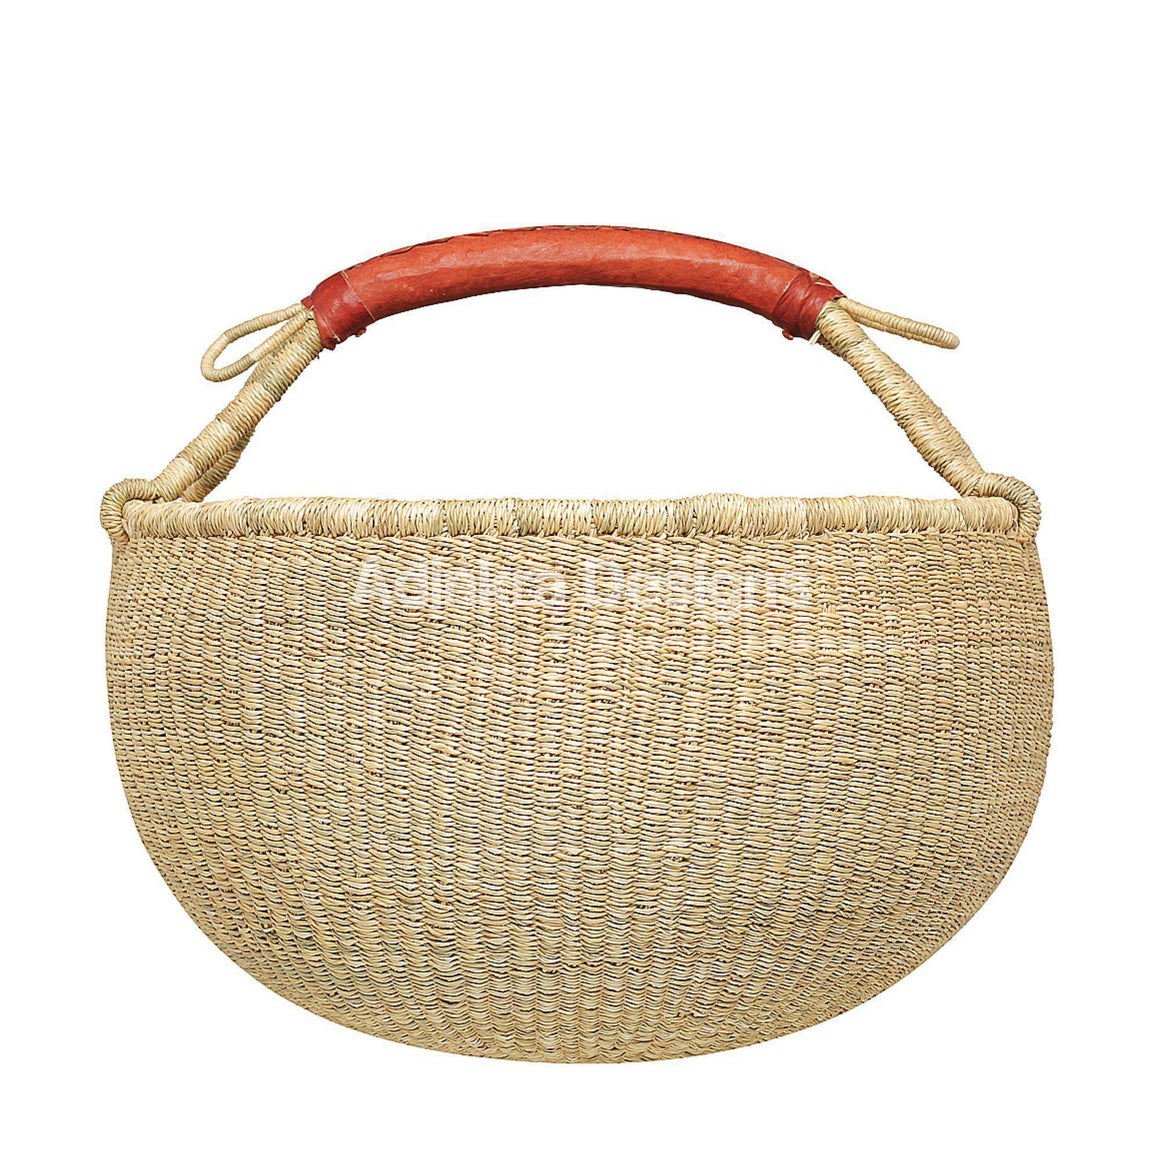 Eco-Friendly, Fair-Trade Bolgo Basket Adinkra Designs.